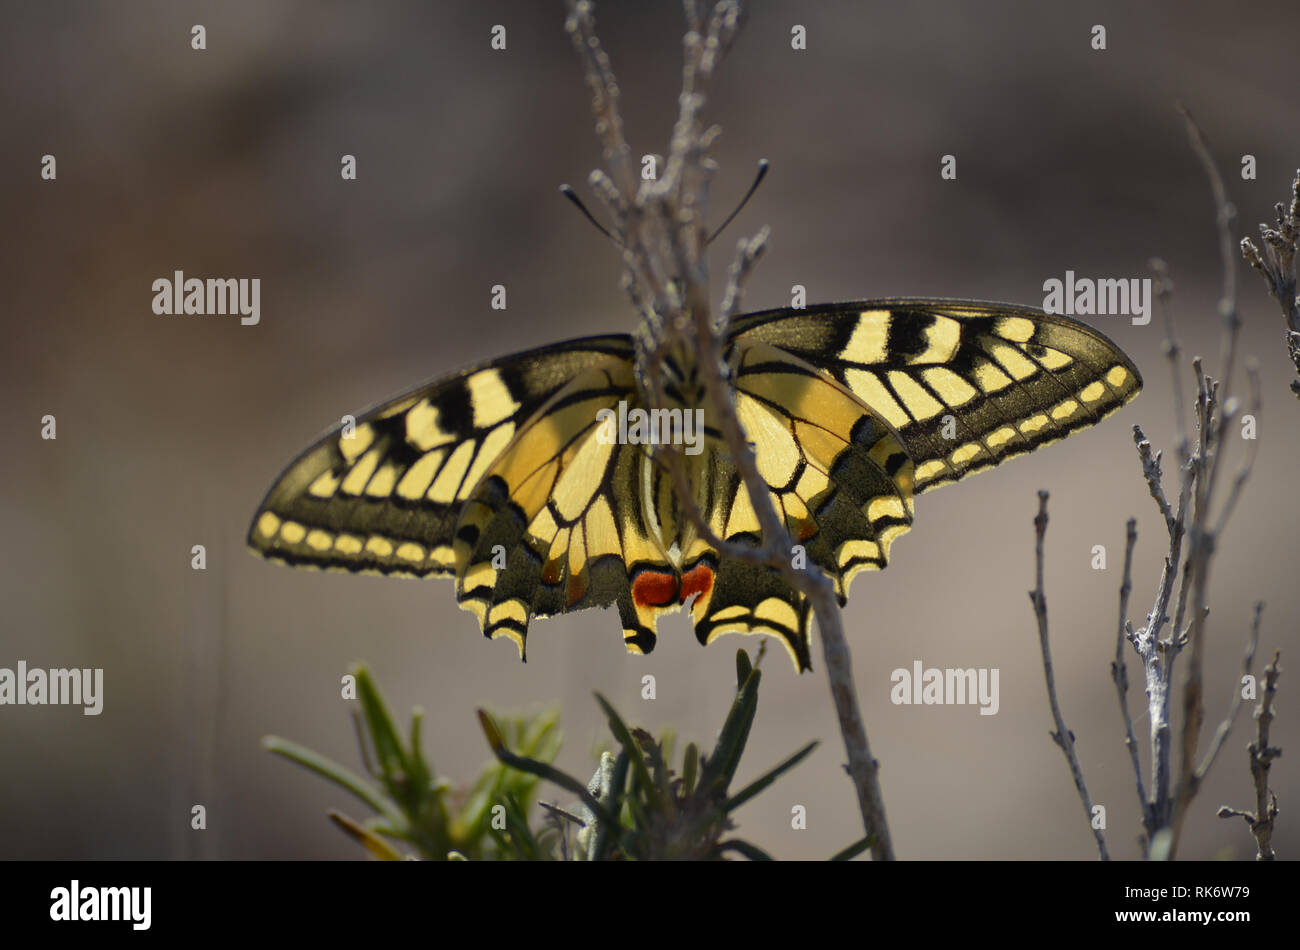 Papilio machaon, a migratory butterfly in Les Rodanes natural reserve, Valencia, Spain - Stock Image